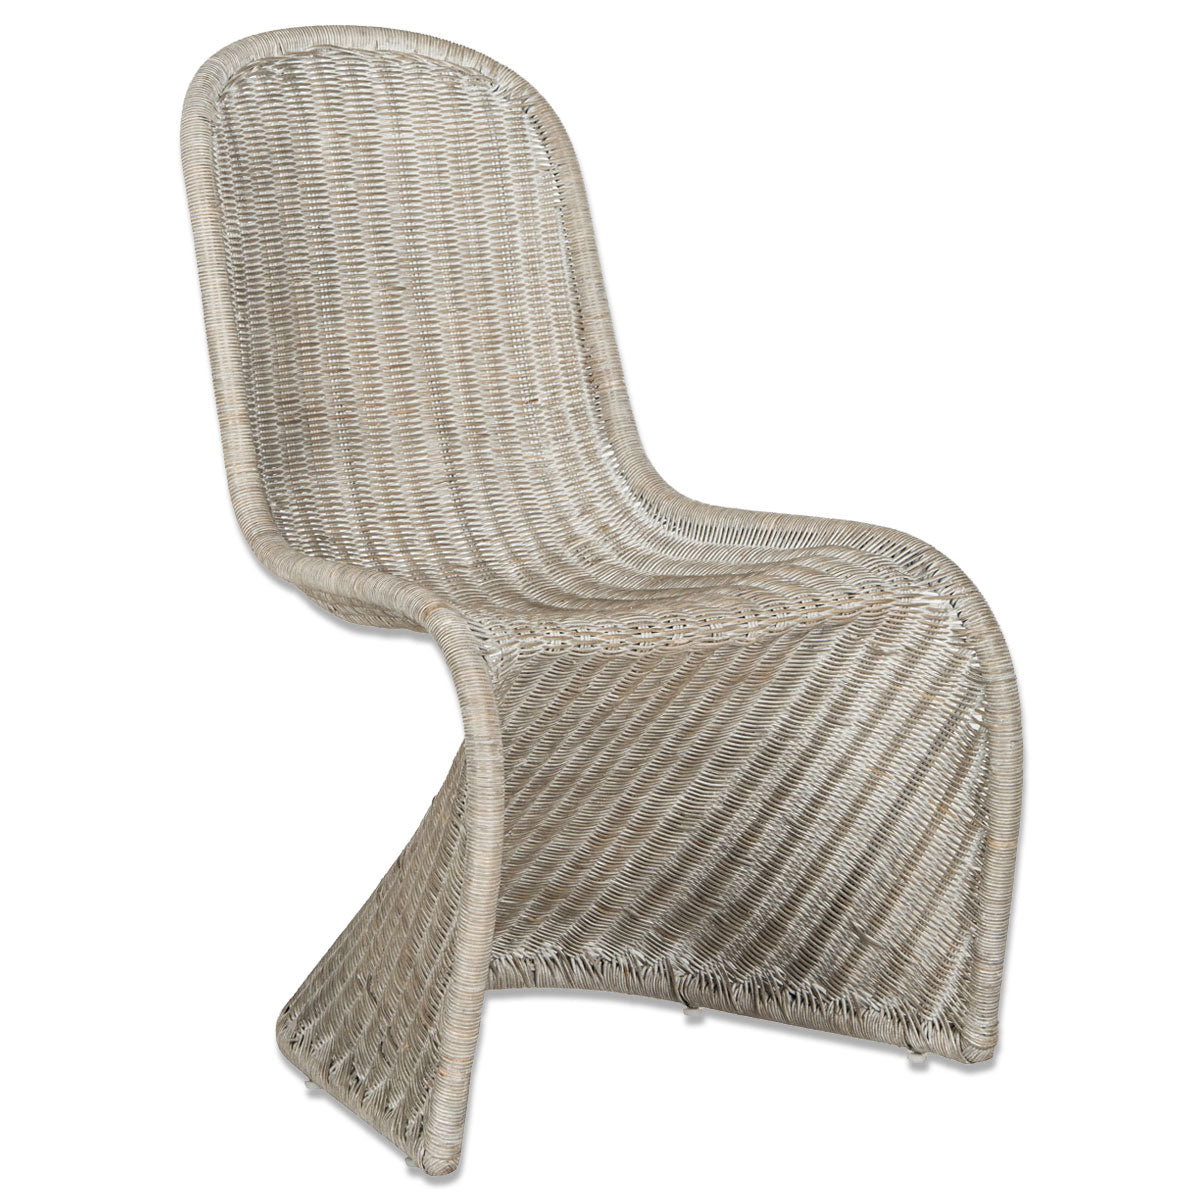 Furbish Studio - Madeline Wicker Chair Pair in Antique Grey one chair showing